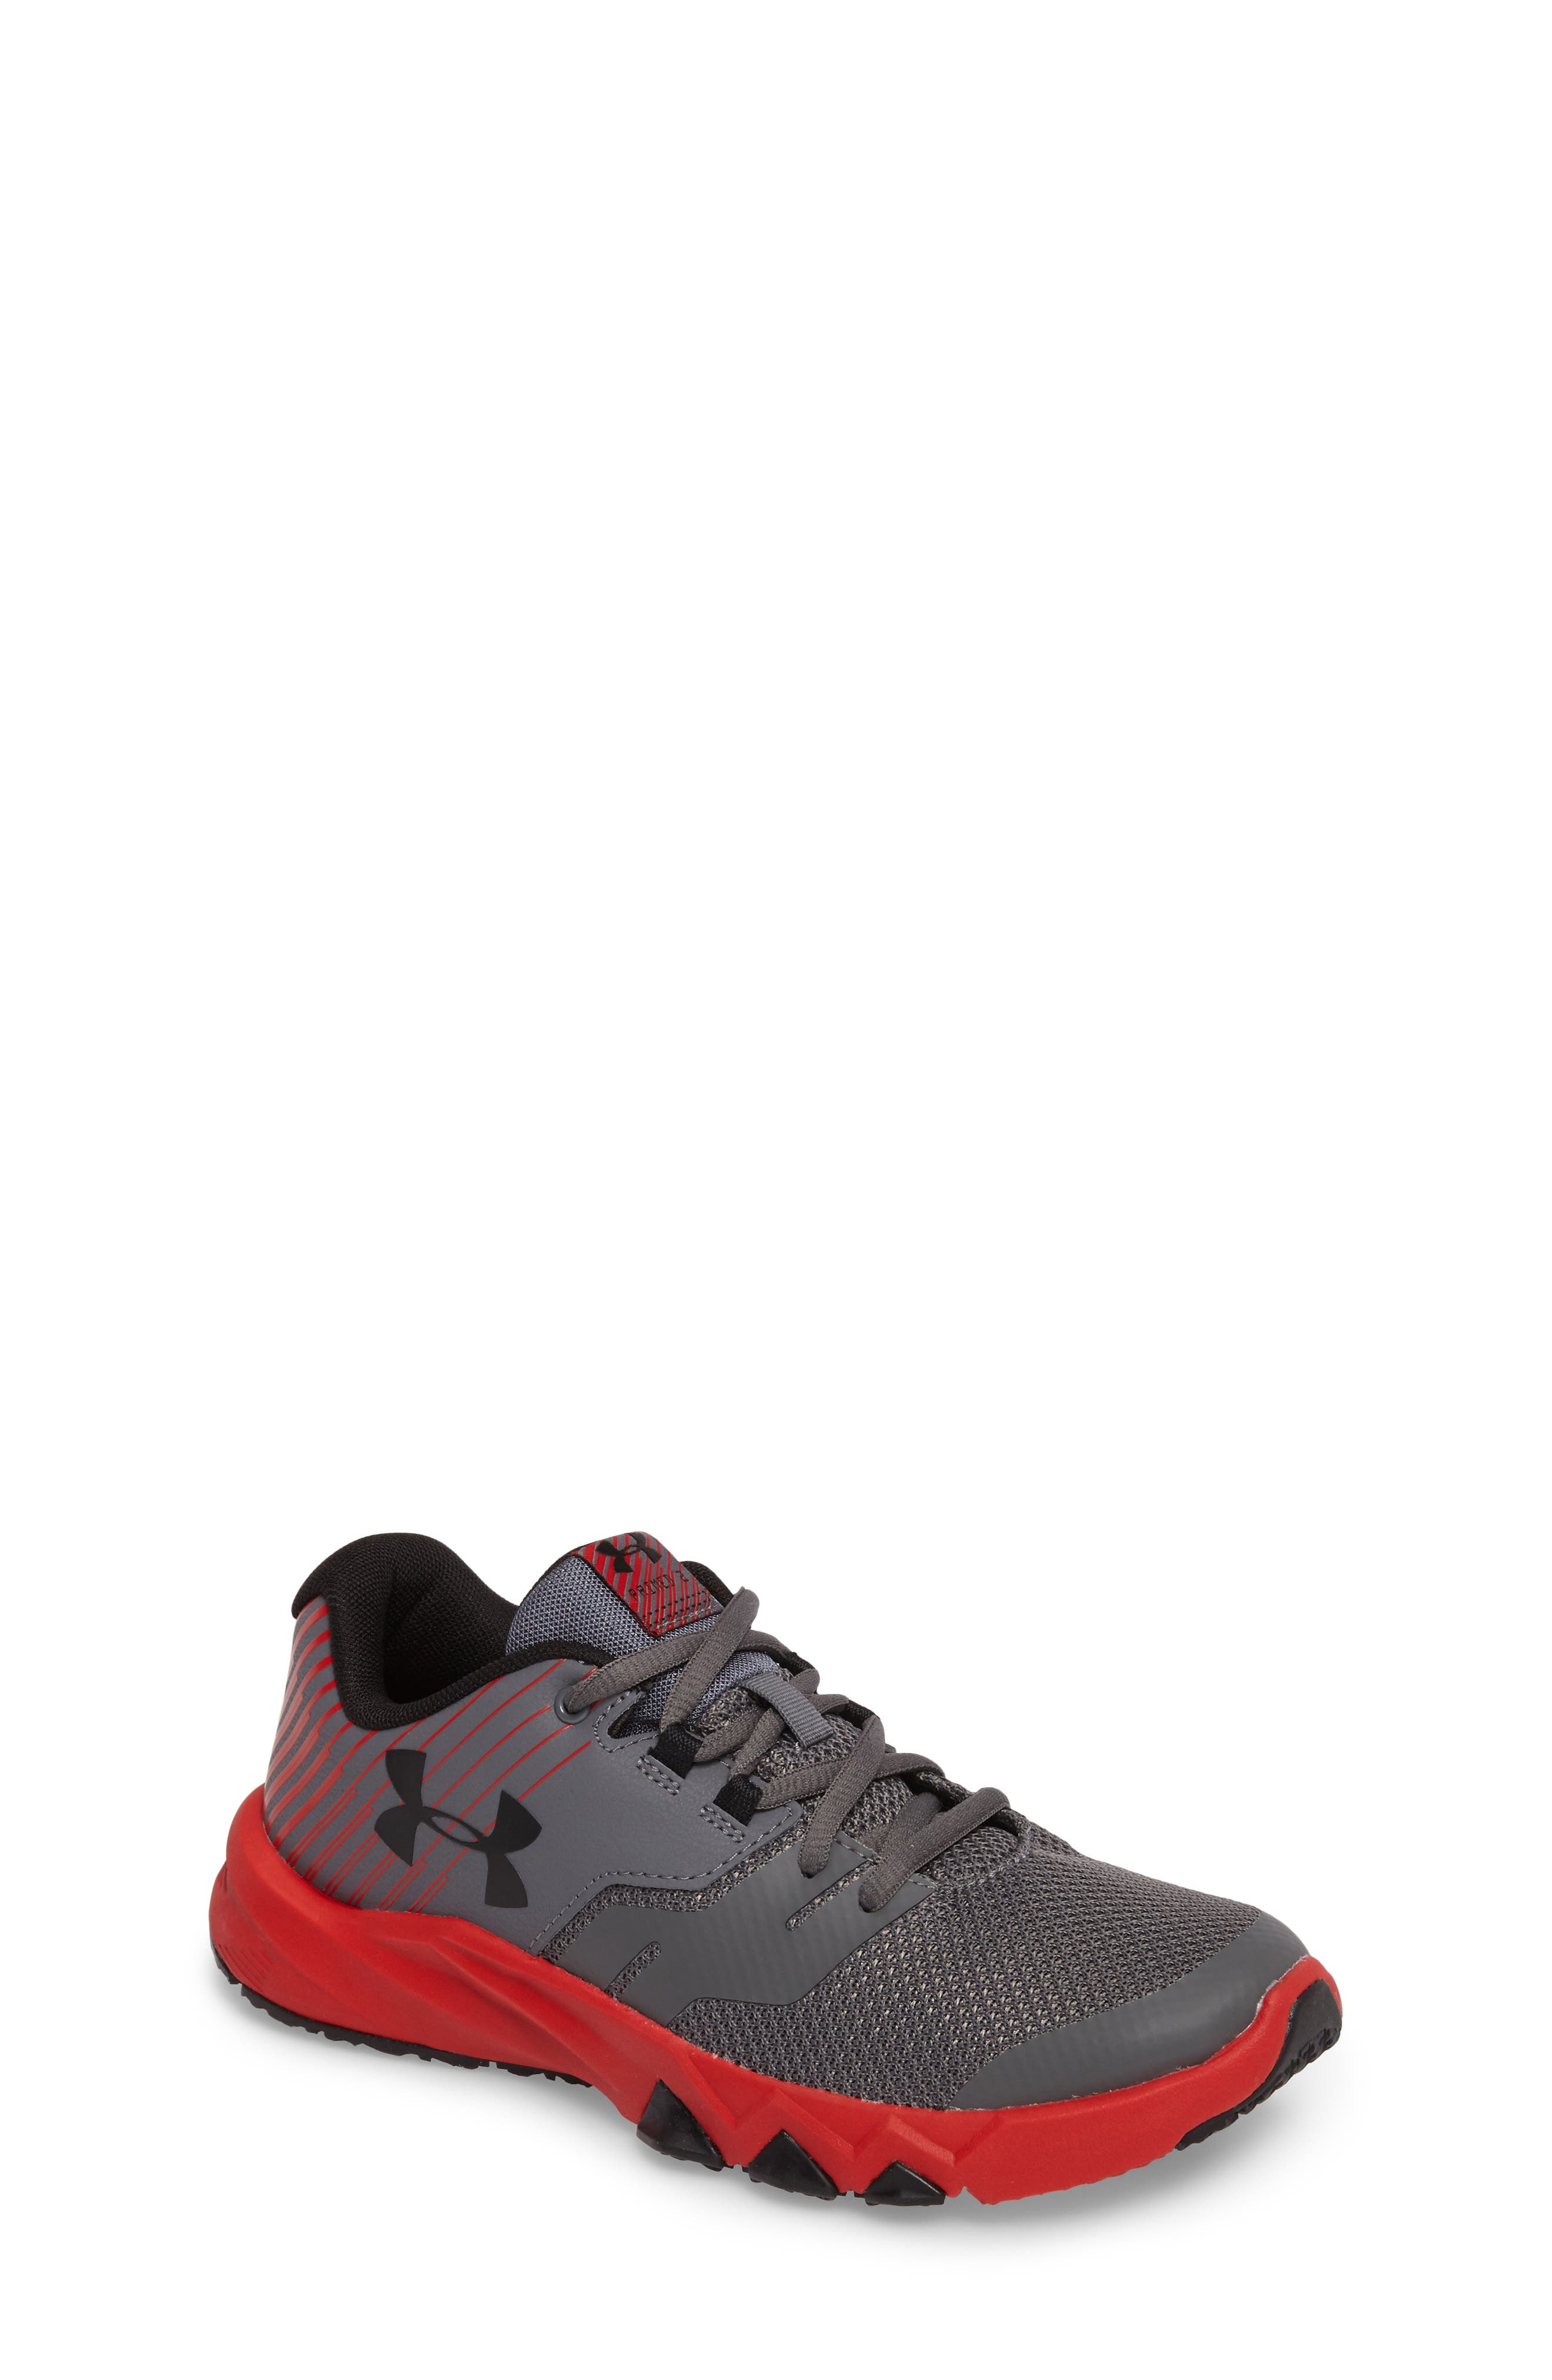 Under Armour Grade School Primed 2 Running Shoe (Big Kid)